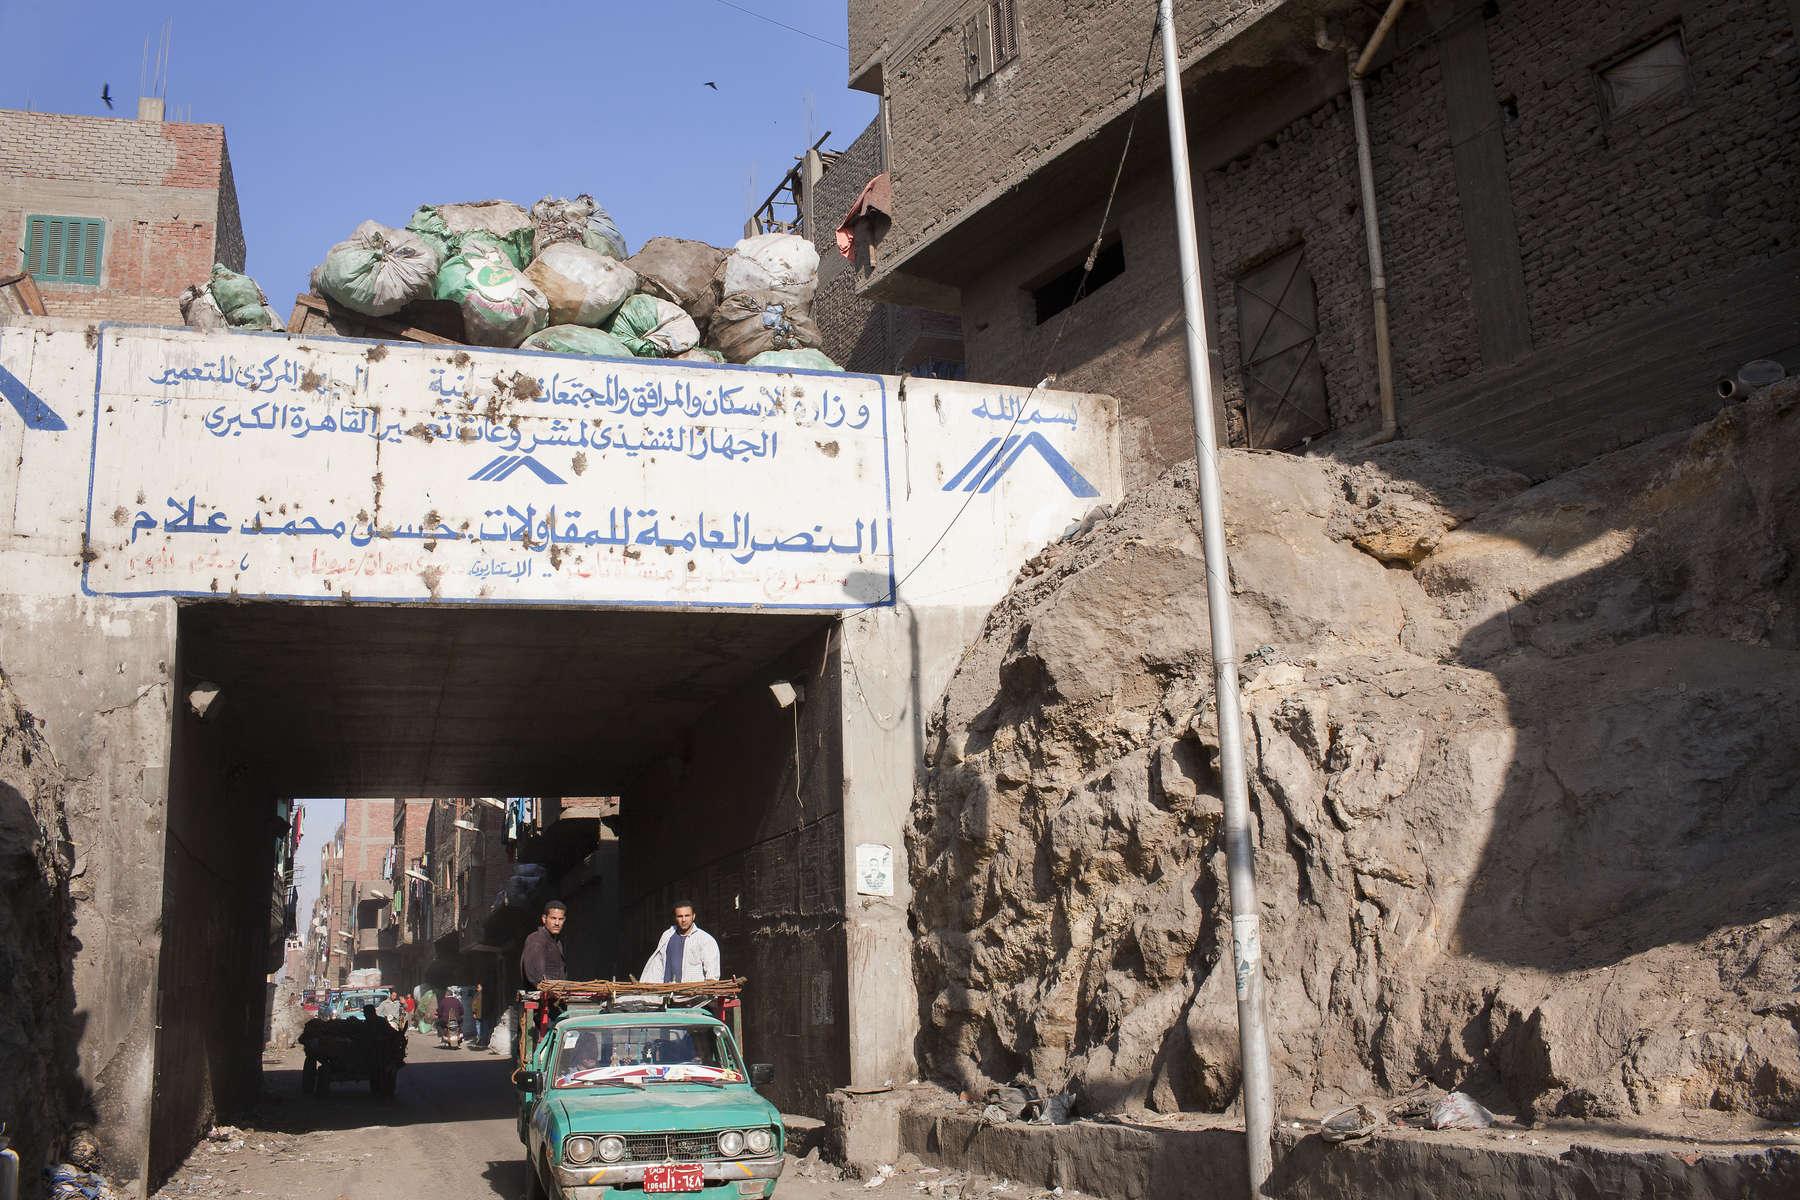 "The gate to the Cairo suburb of MoqqatamMoqqatam is on the edge of Cairo and home to a people known as the Zabaleen, said to be the world's greatest waste recyclers. The Zabaleen, which means plainly enough, ""the garbage collectors"", pick up around 4,000 tons of Cairo's waste each day. American researchers have shown that the Zabaleen recycle 85% of this garbage into something useful: a higher rate than anywhere else on the planet. The men do two shifts leaving about 4am and again around 9am. The rubbish is taken back to Moqqatam for the women to sit in and sort through. The organic waste is fed to livestock (the Zabaleen are originally swine herders), the rest sorted for recycling. The future of the Zabaleen is uncertain: if the Cairo authorities get their way, this community of around 25,000 Coptic Christians living in a Muslim country will be gone, and with it, their unique lifestyle."